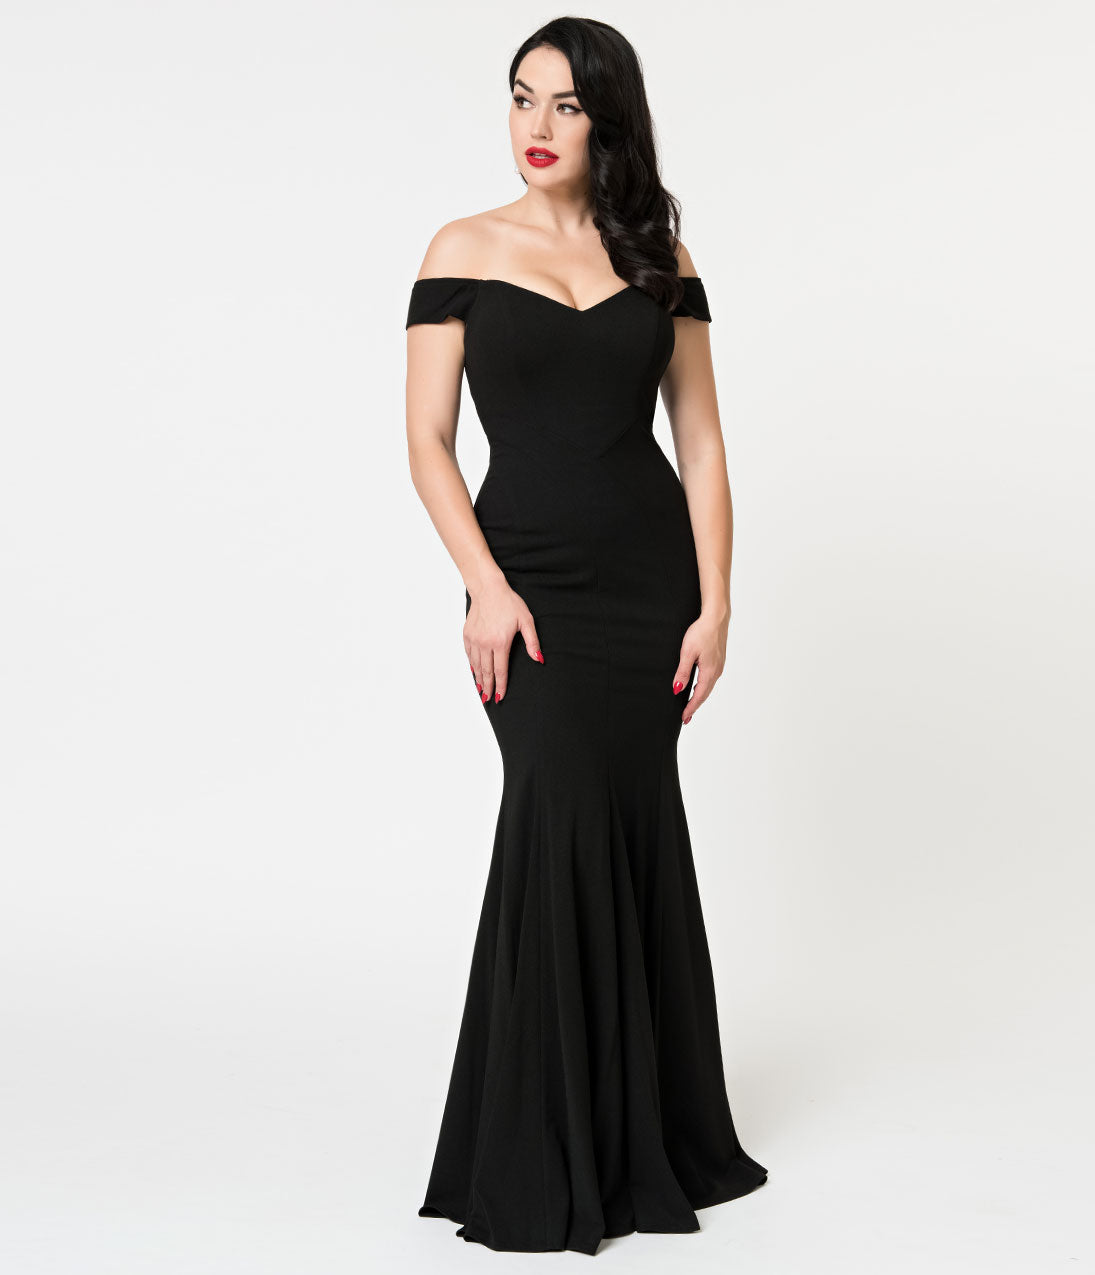 1950s History of Prom, Party, Evening and Formal Dresses Black Off The Shoulder Fitted Mermaid Long Dress $118.00 AT vintagedancer.com